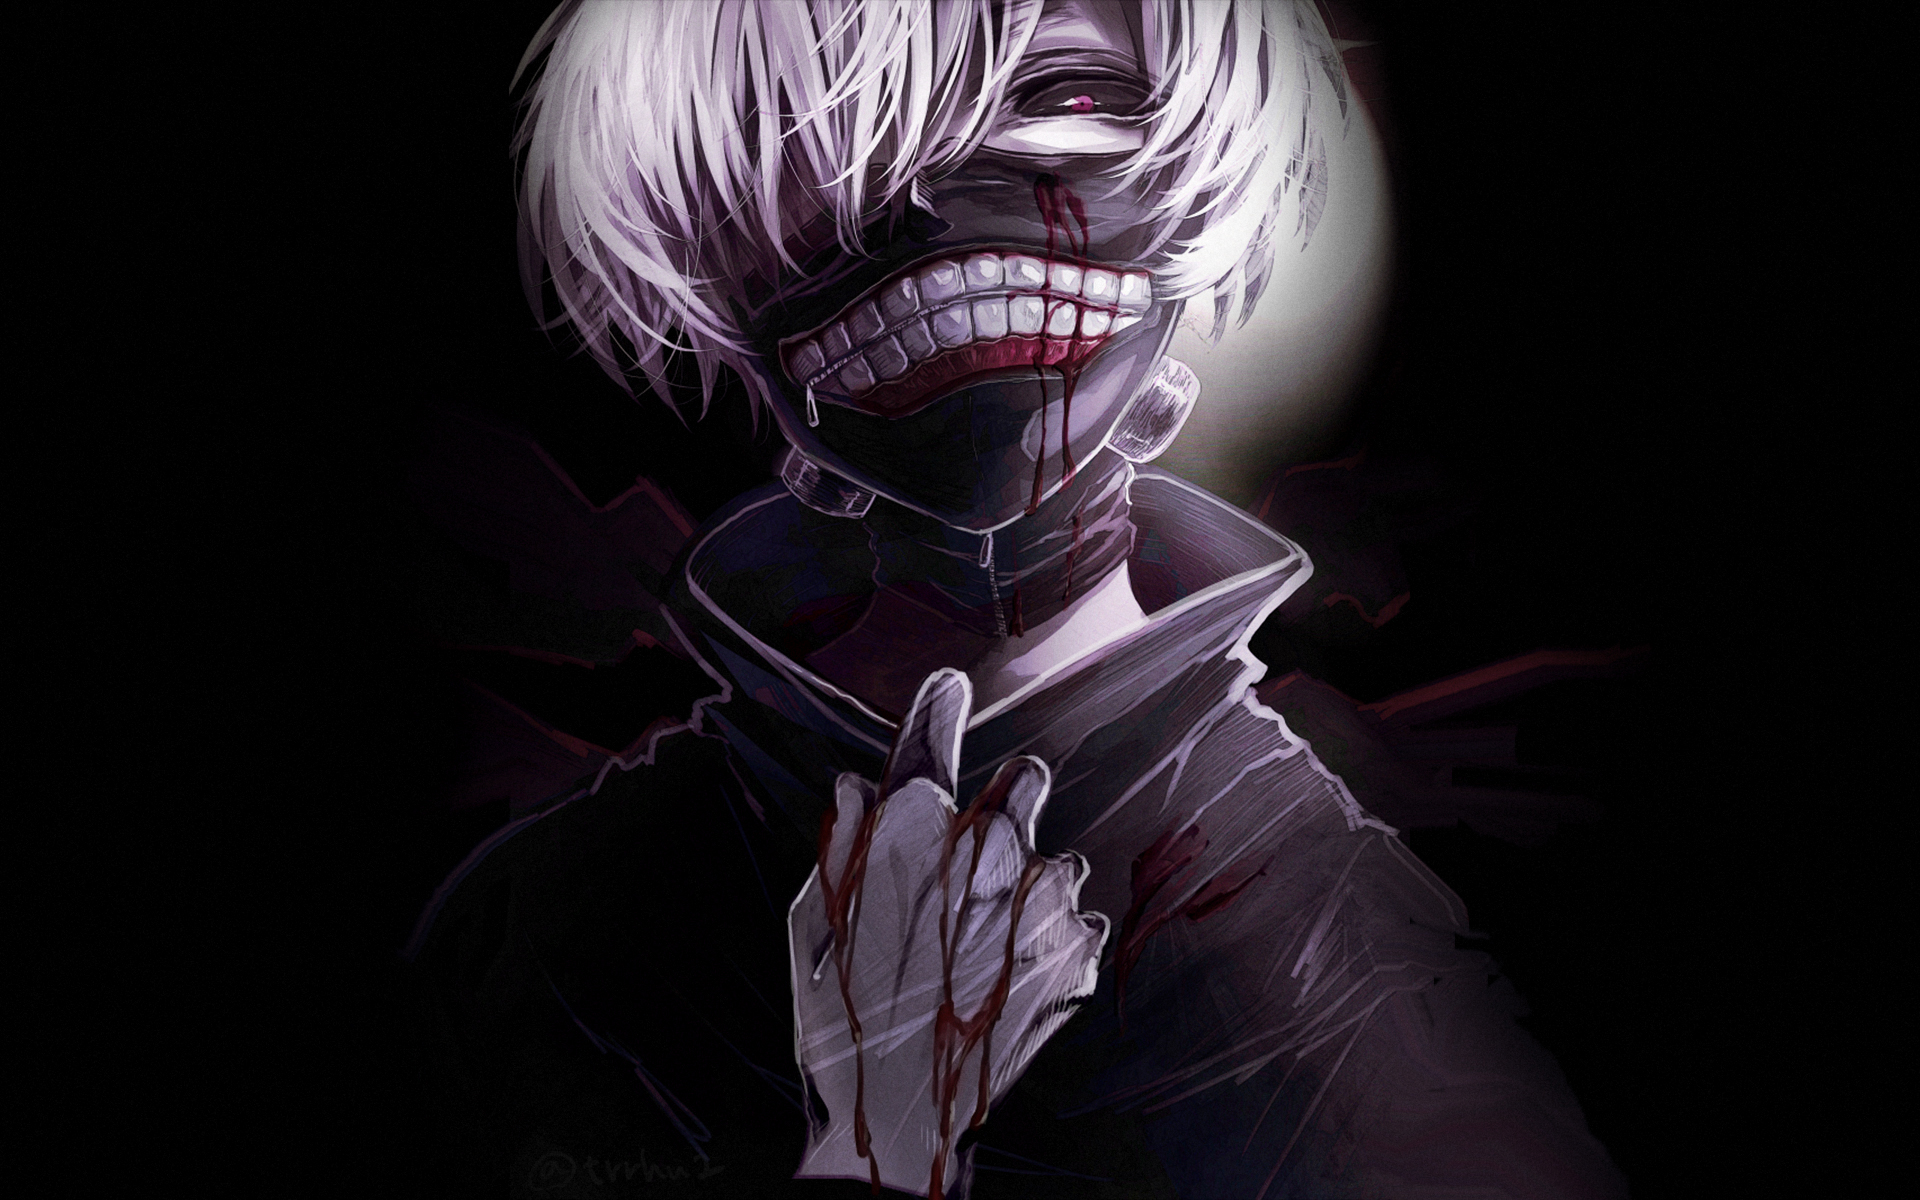 Ken Kaneki Tokyo Ghoul, HD Anime, 4k Wallpapers, Images, Backgrounds, Photos and Pictures